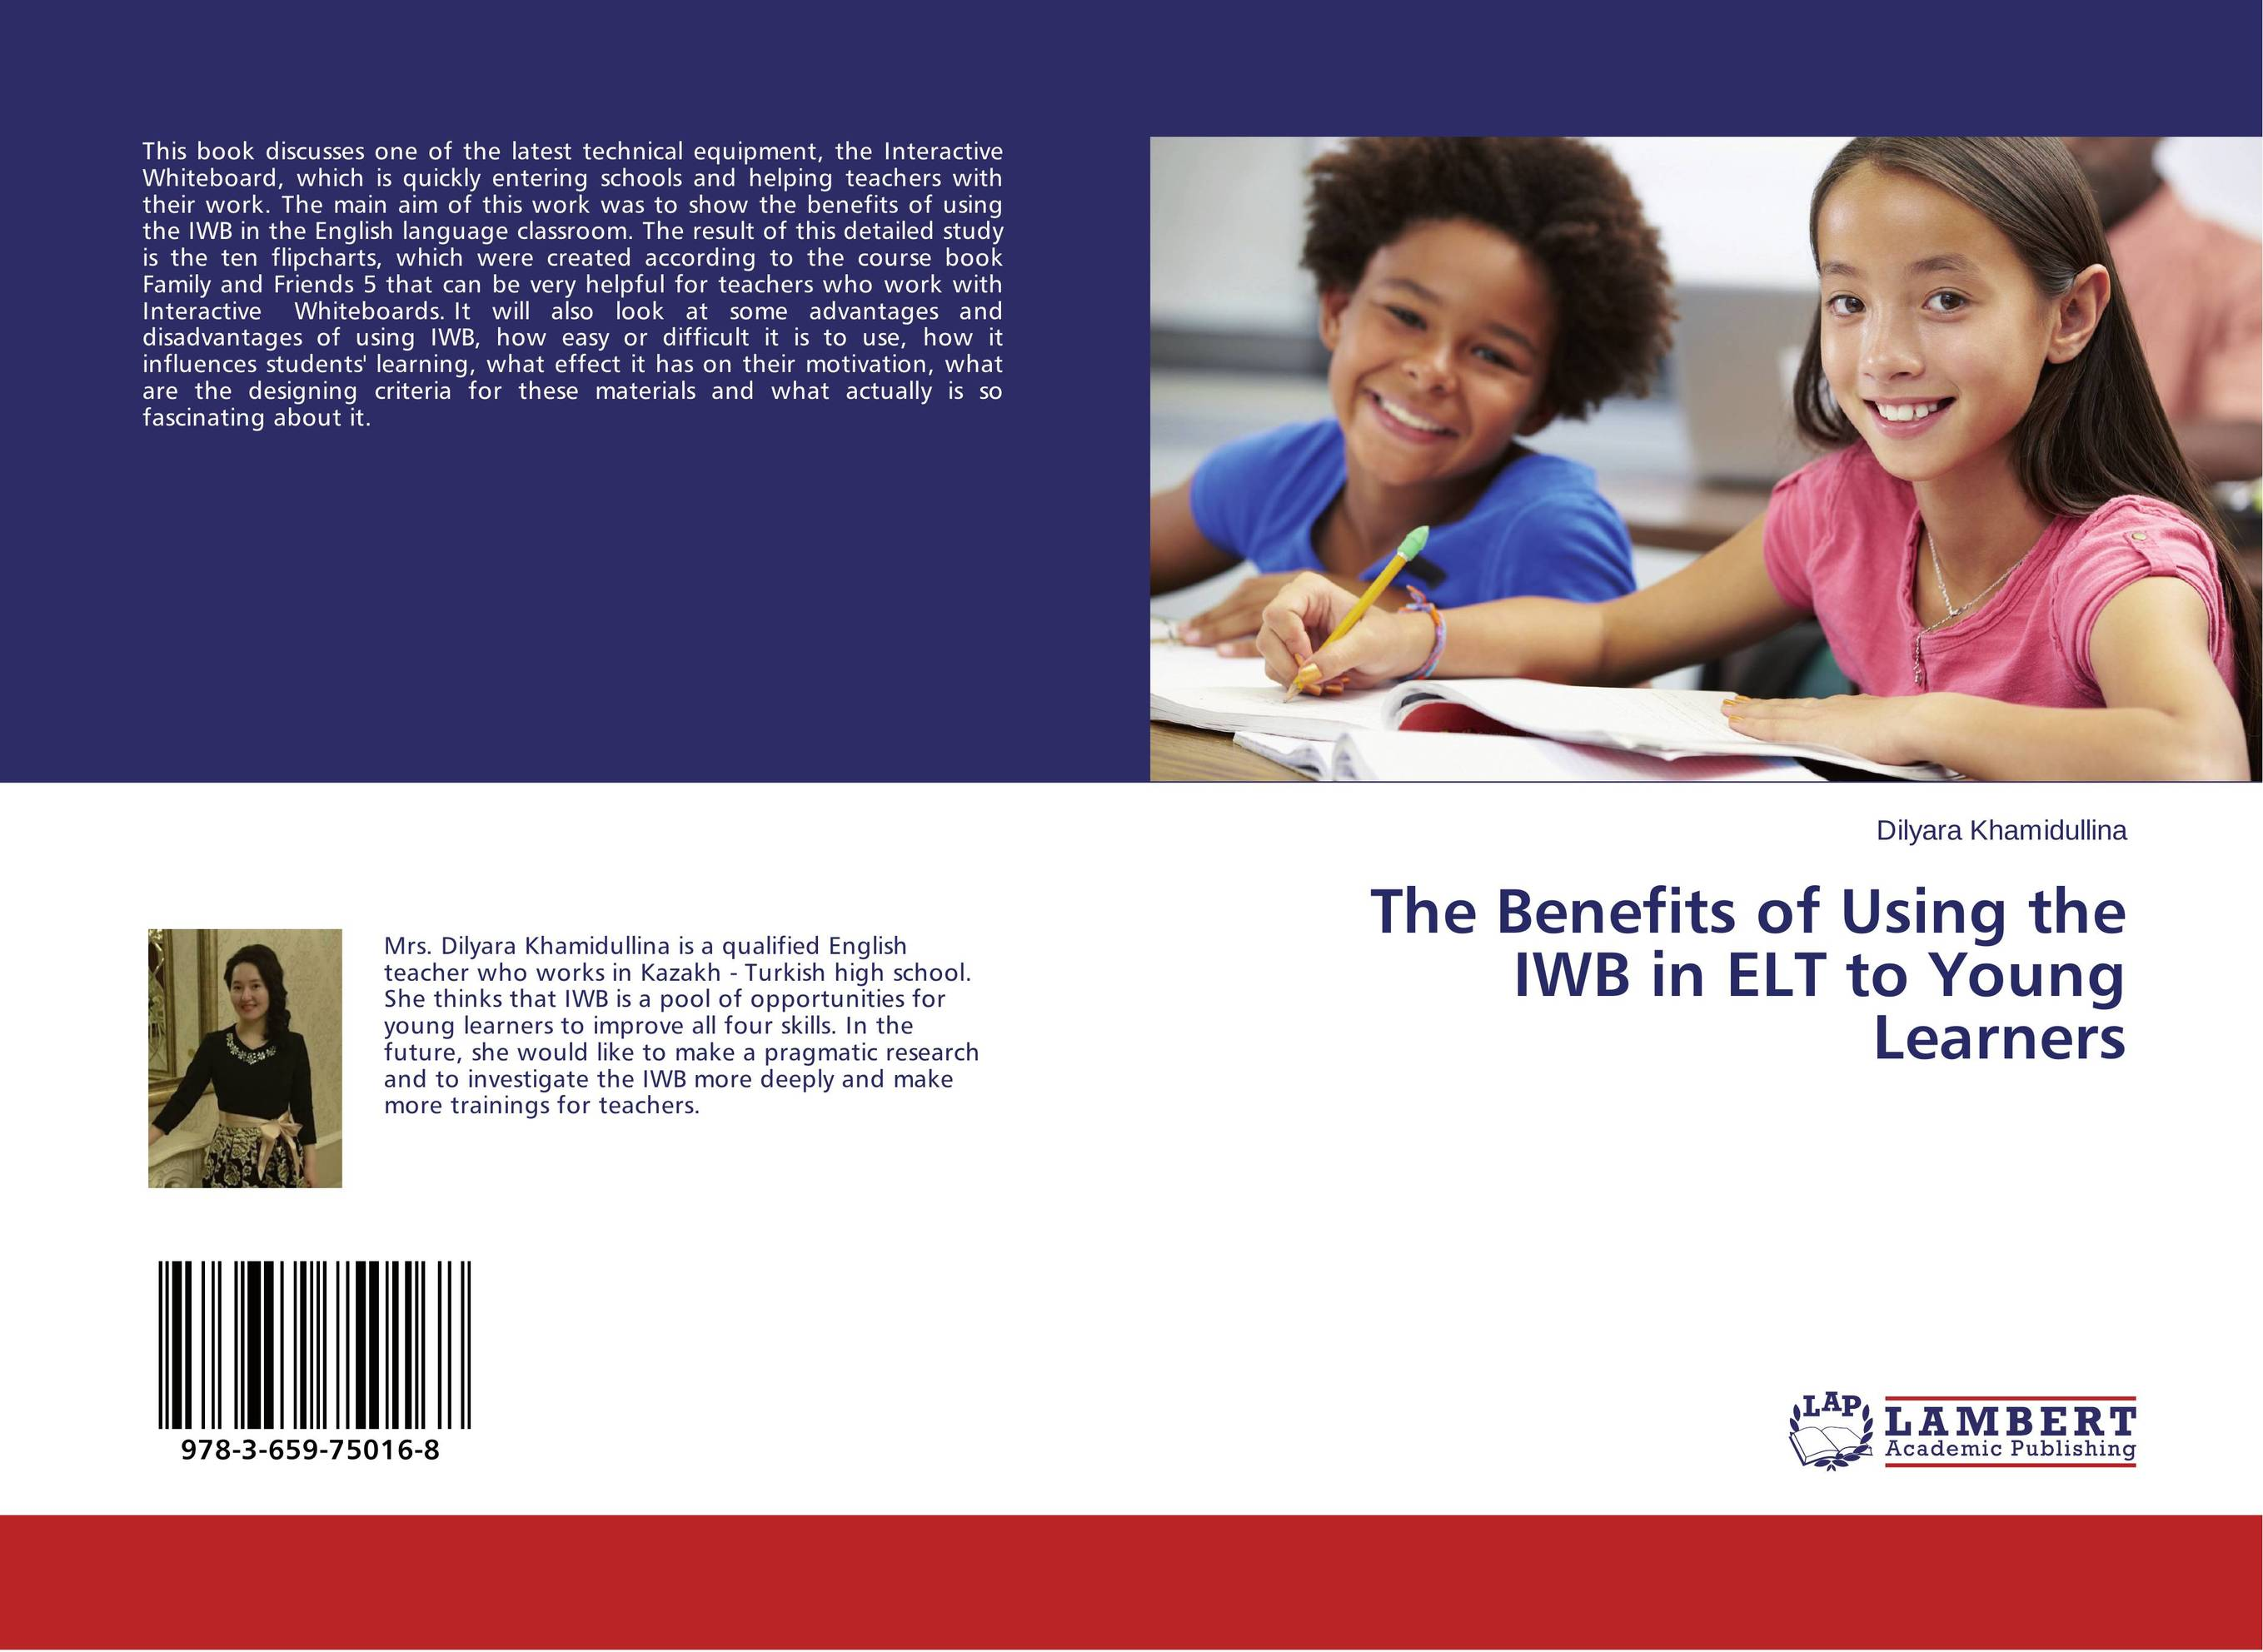 The Benefits of Using the IWB in ELT to Young Learners alexander mishkin how to stay young it